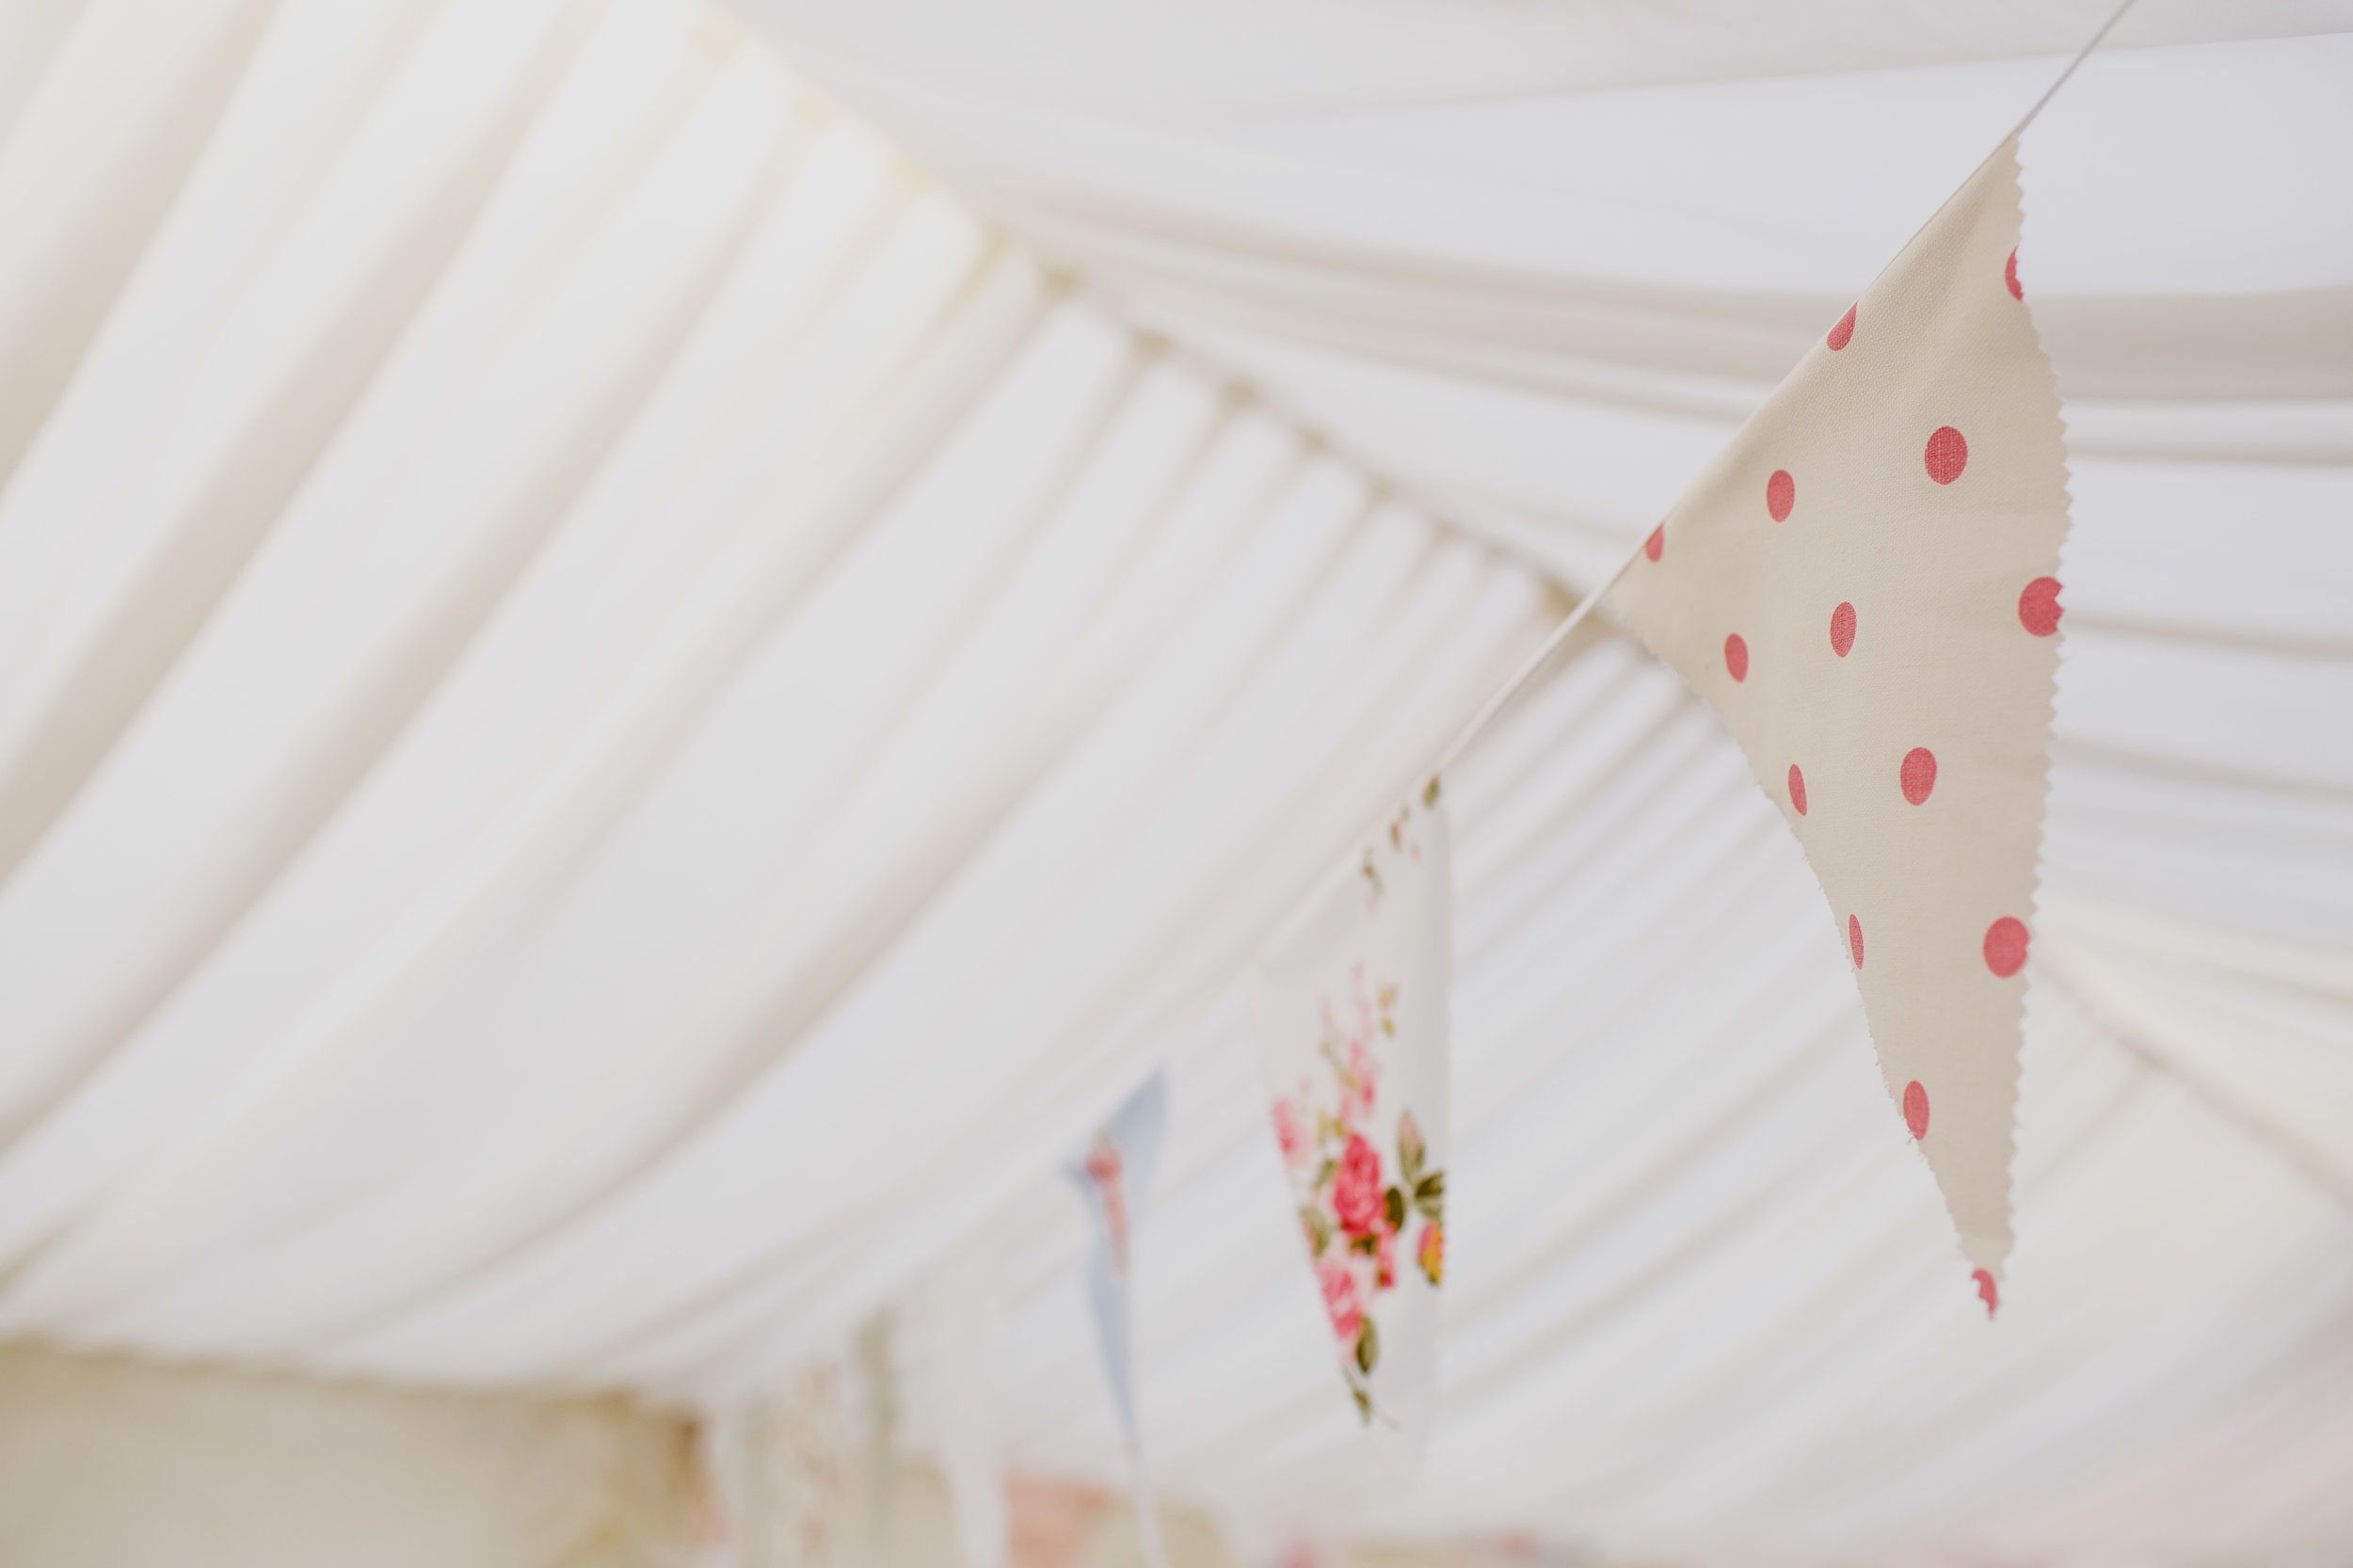 2. Marquee - The sun is glorious but, let's be honest, Brits burn easily. Make sure you stay protected from the heat with a marquee for your event! Stylish, comfortable and convenient, Covered Event's marquees come in a range of colours and sizes suited for every occasion.